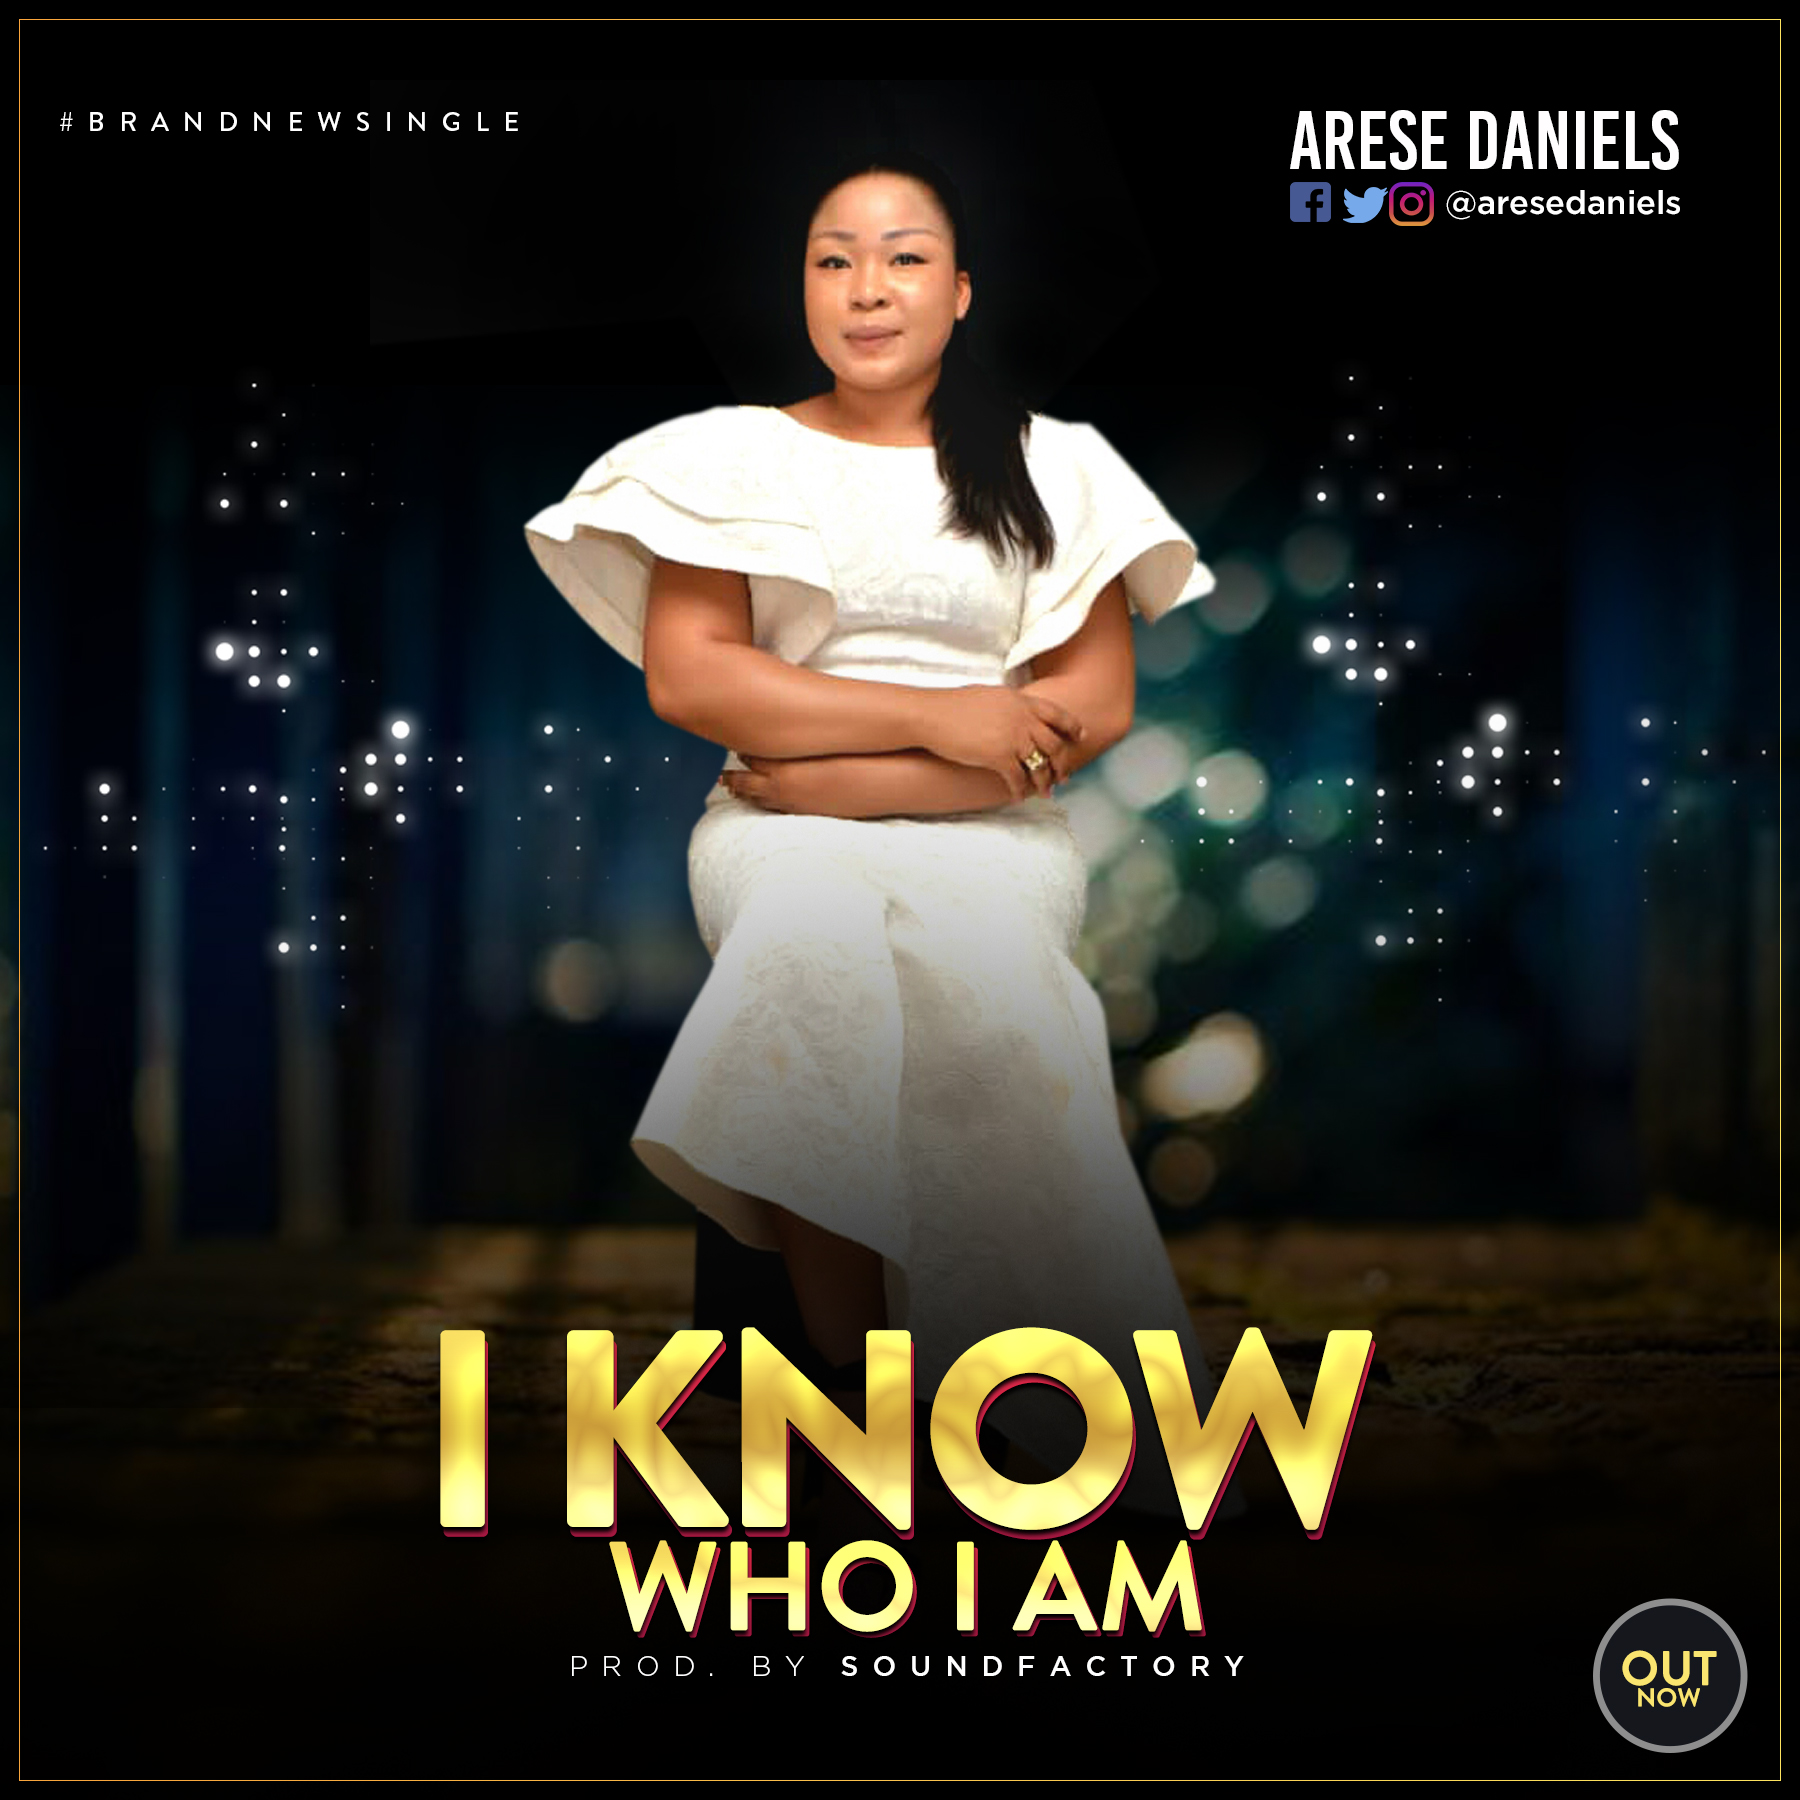 Music: I Know Who I Am ~ Arese Daniels [@AreseDaniels]